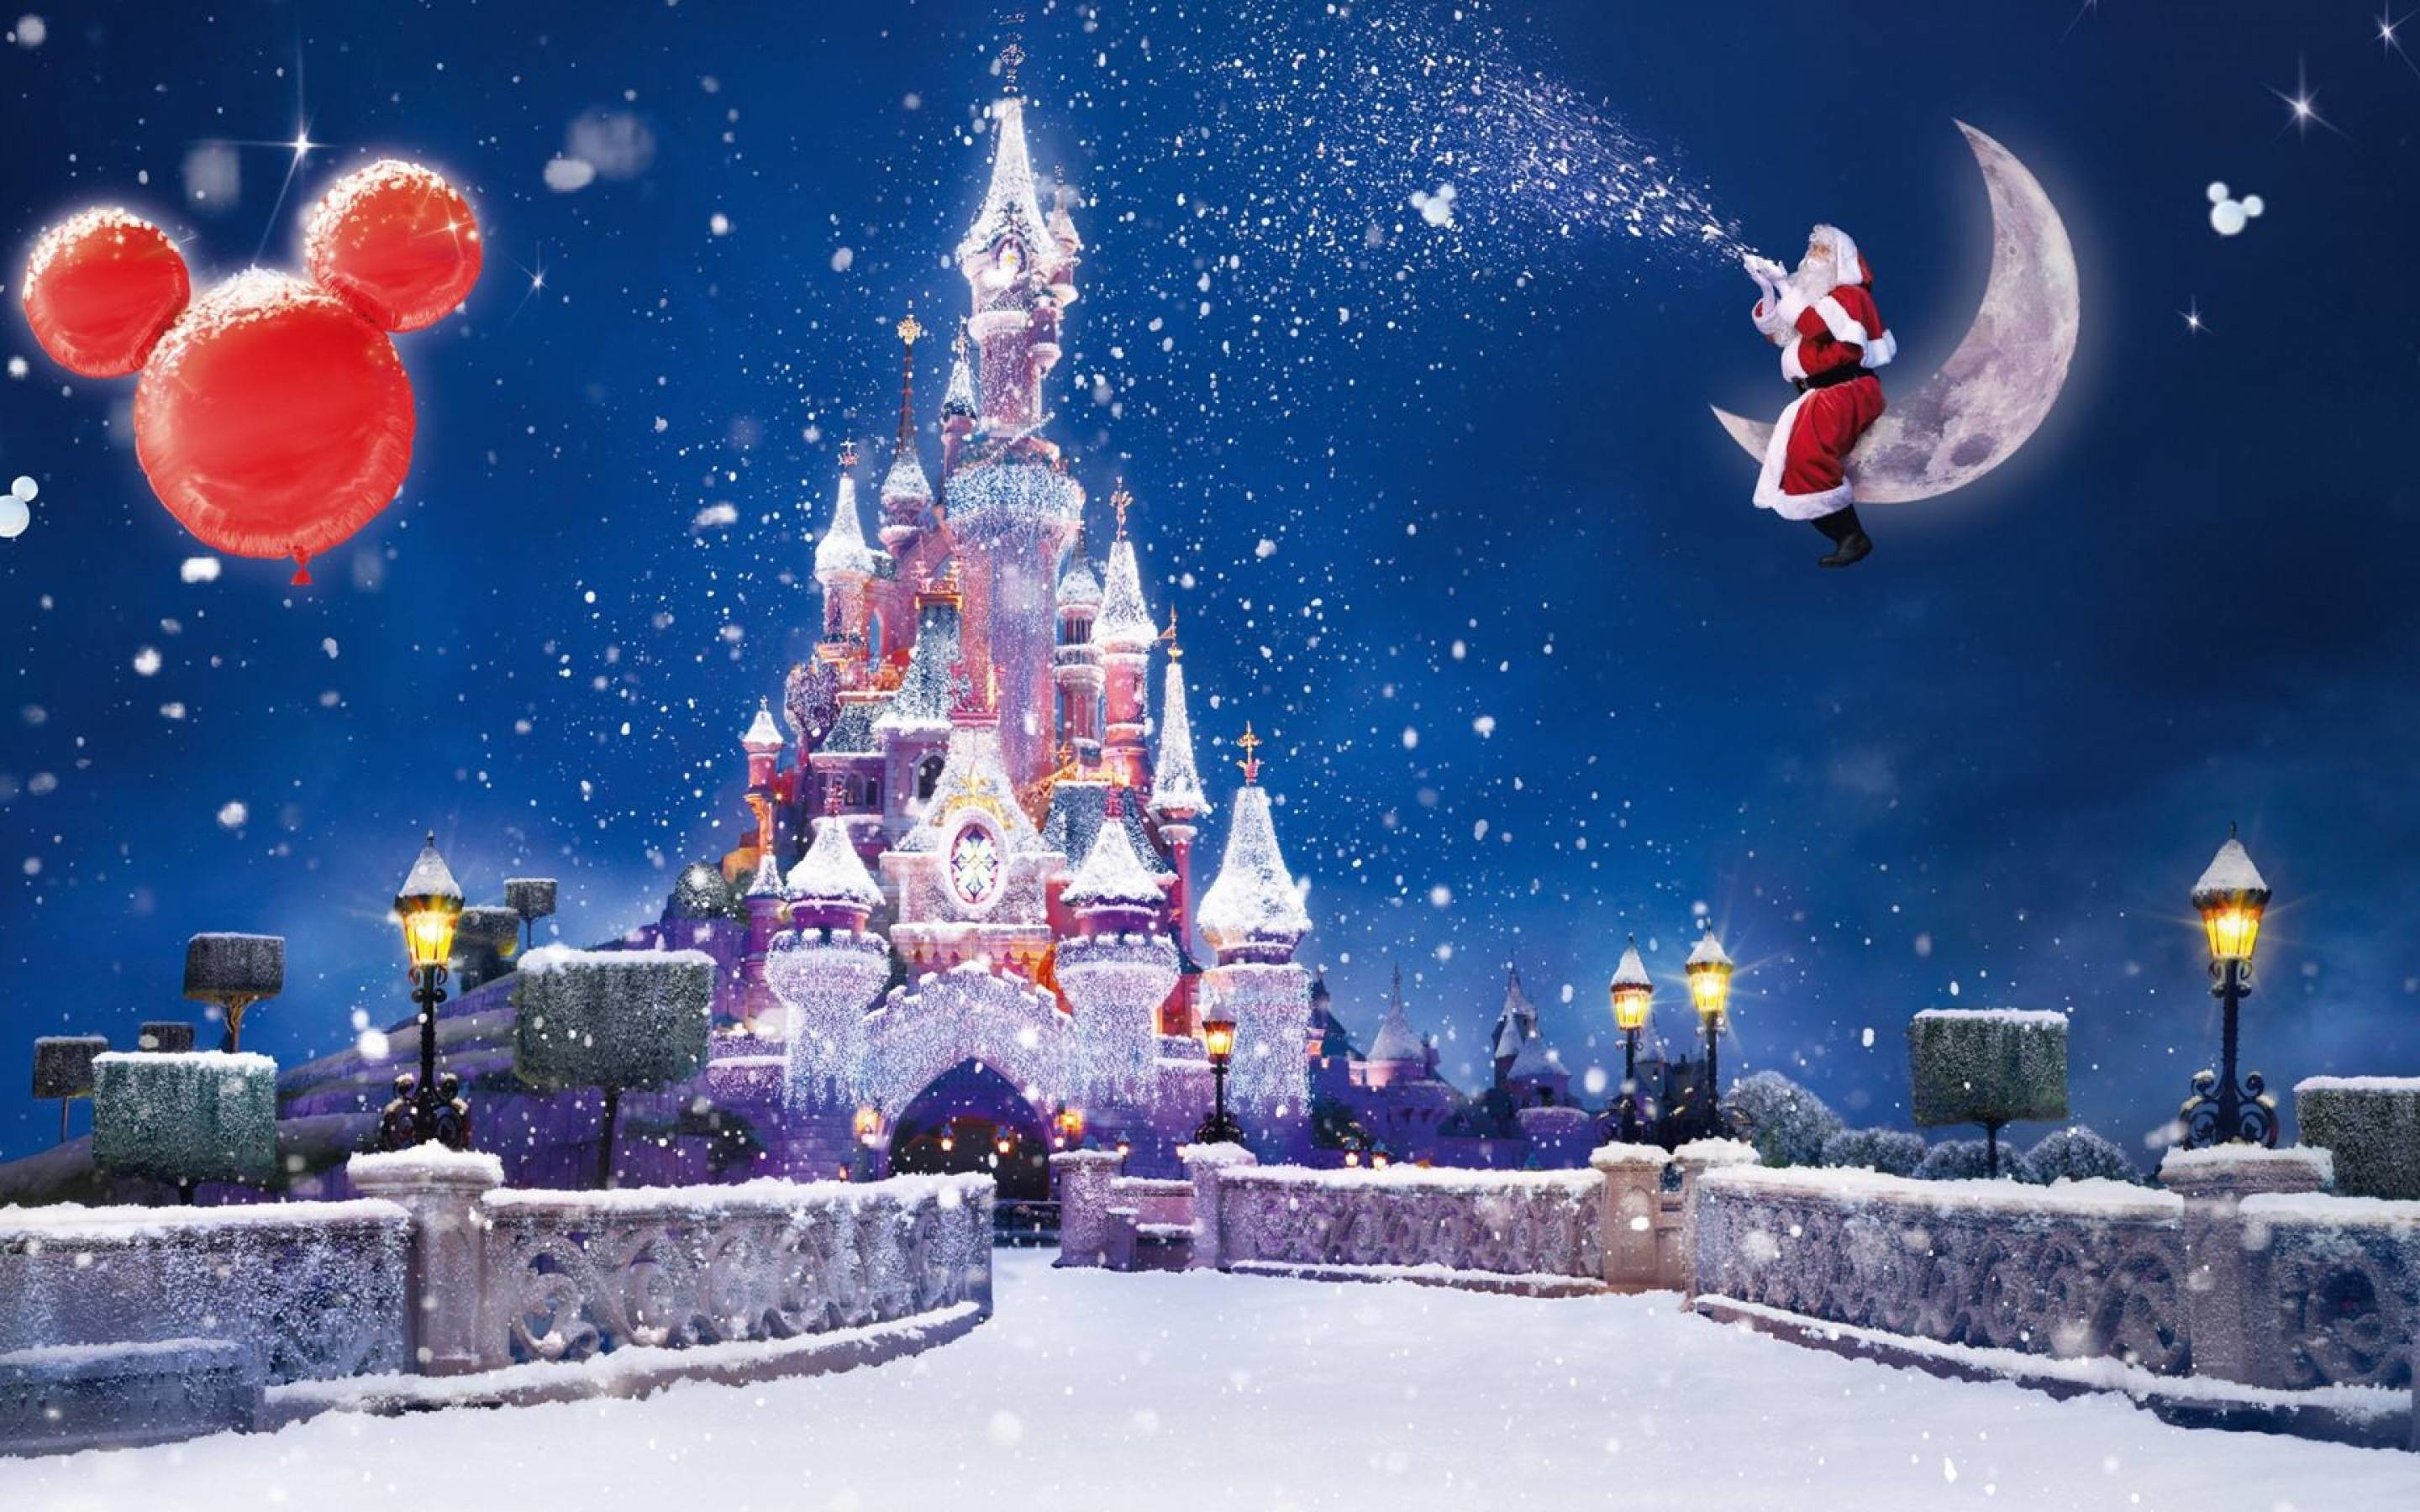 Disney Christmas Wallpapers – Full HD wallpaper search – page 2